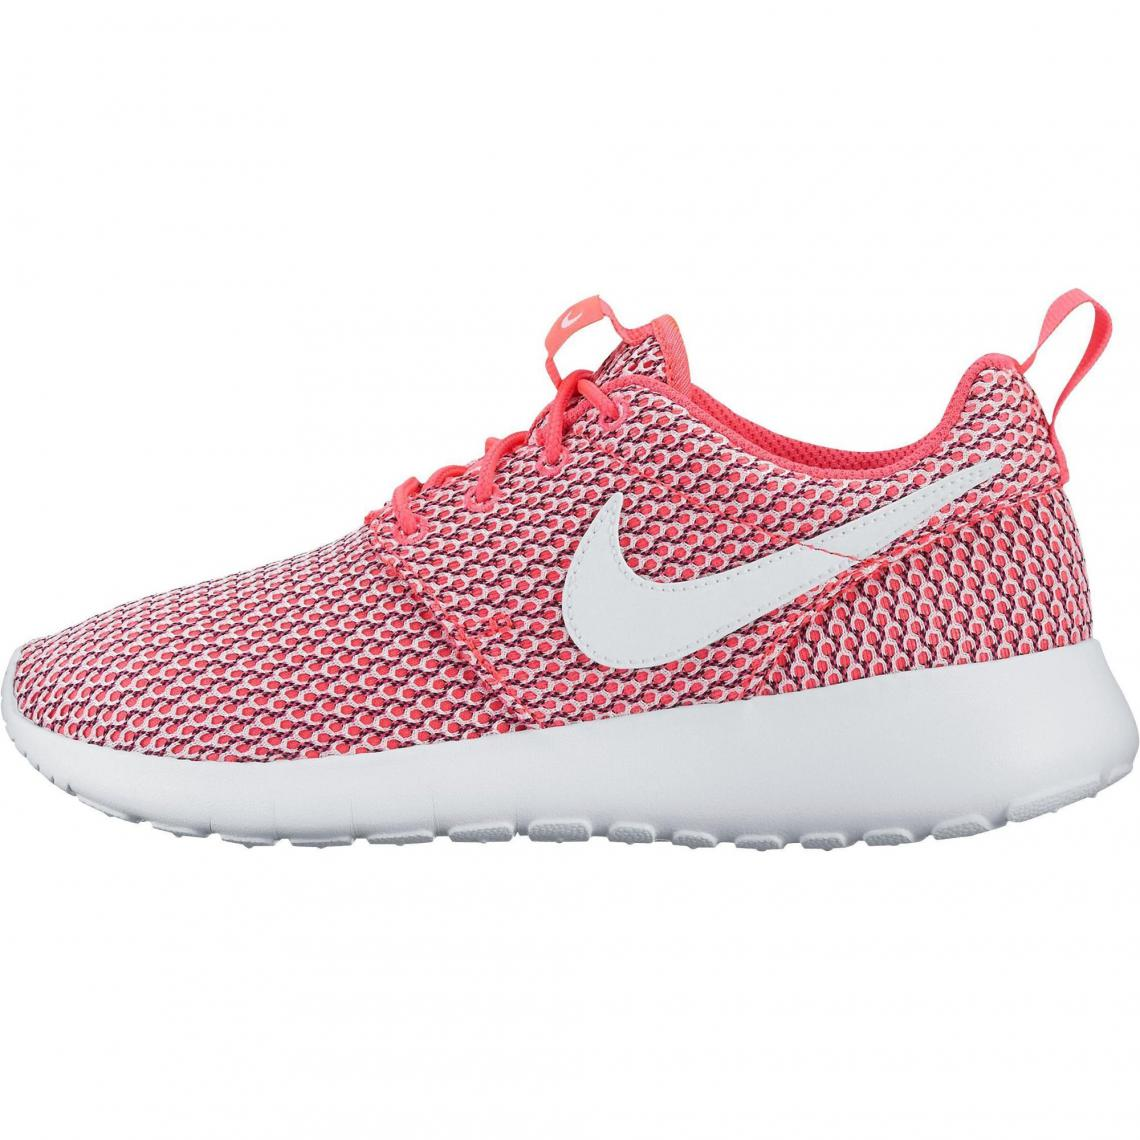 newest 24a17 59be0 NIKE Roshe One chaussures de running junior - Rose Nike Femme